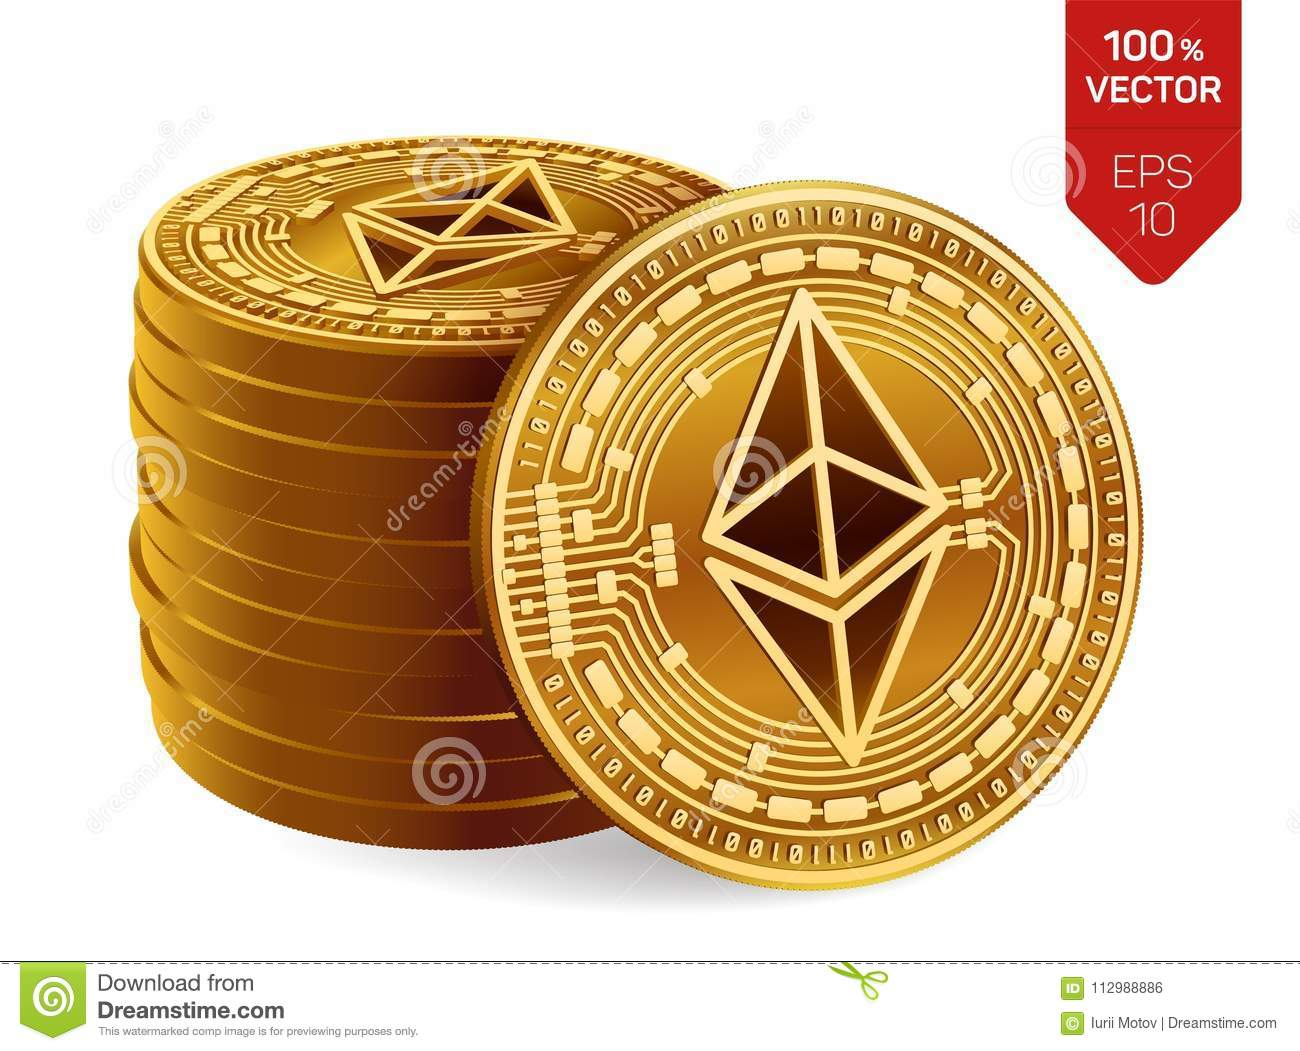 Ethereum. 3D isometric Physical coins. Digital currency. Cryptocurrency. Stack of golden coins with Ethereum symbol isolated on wh